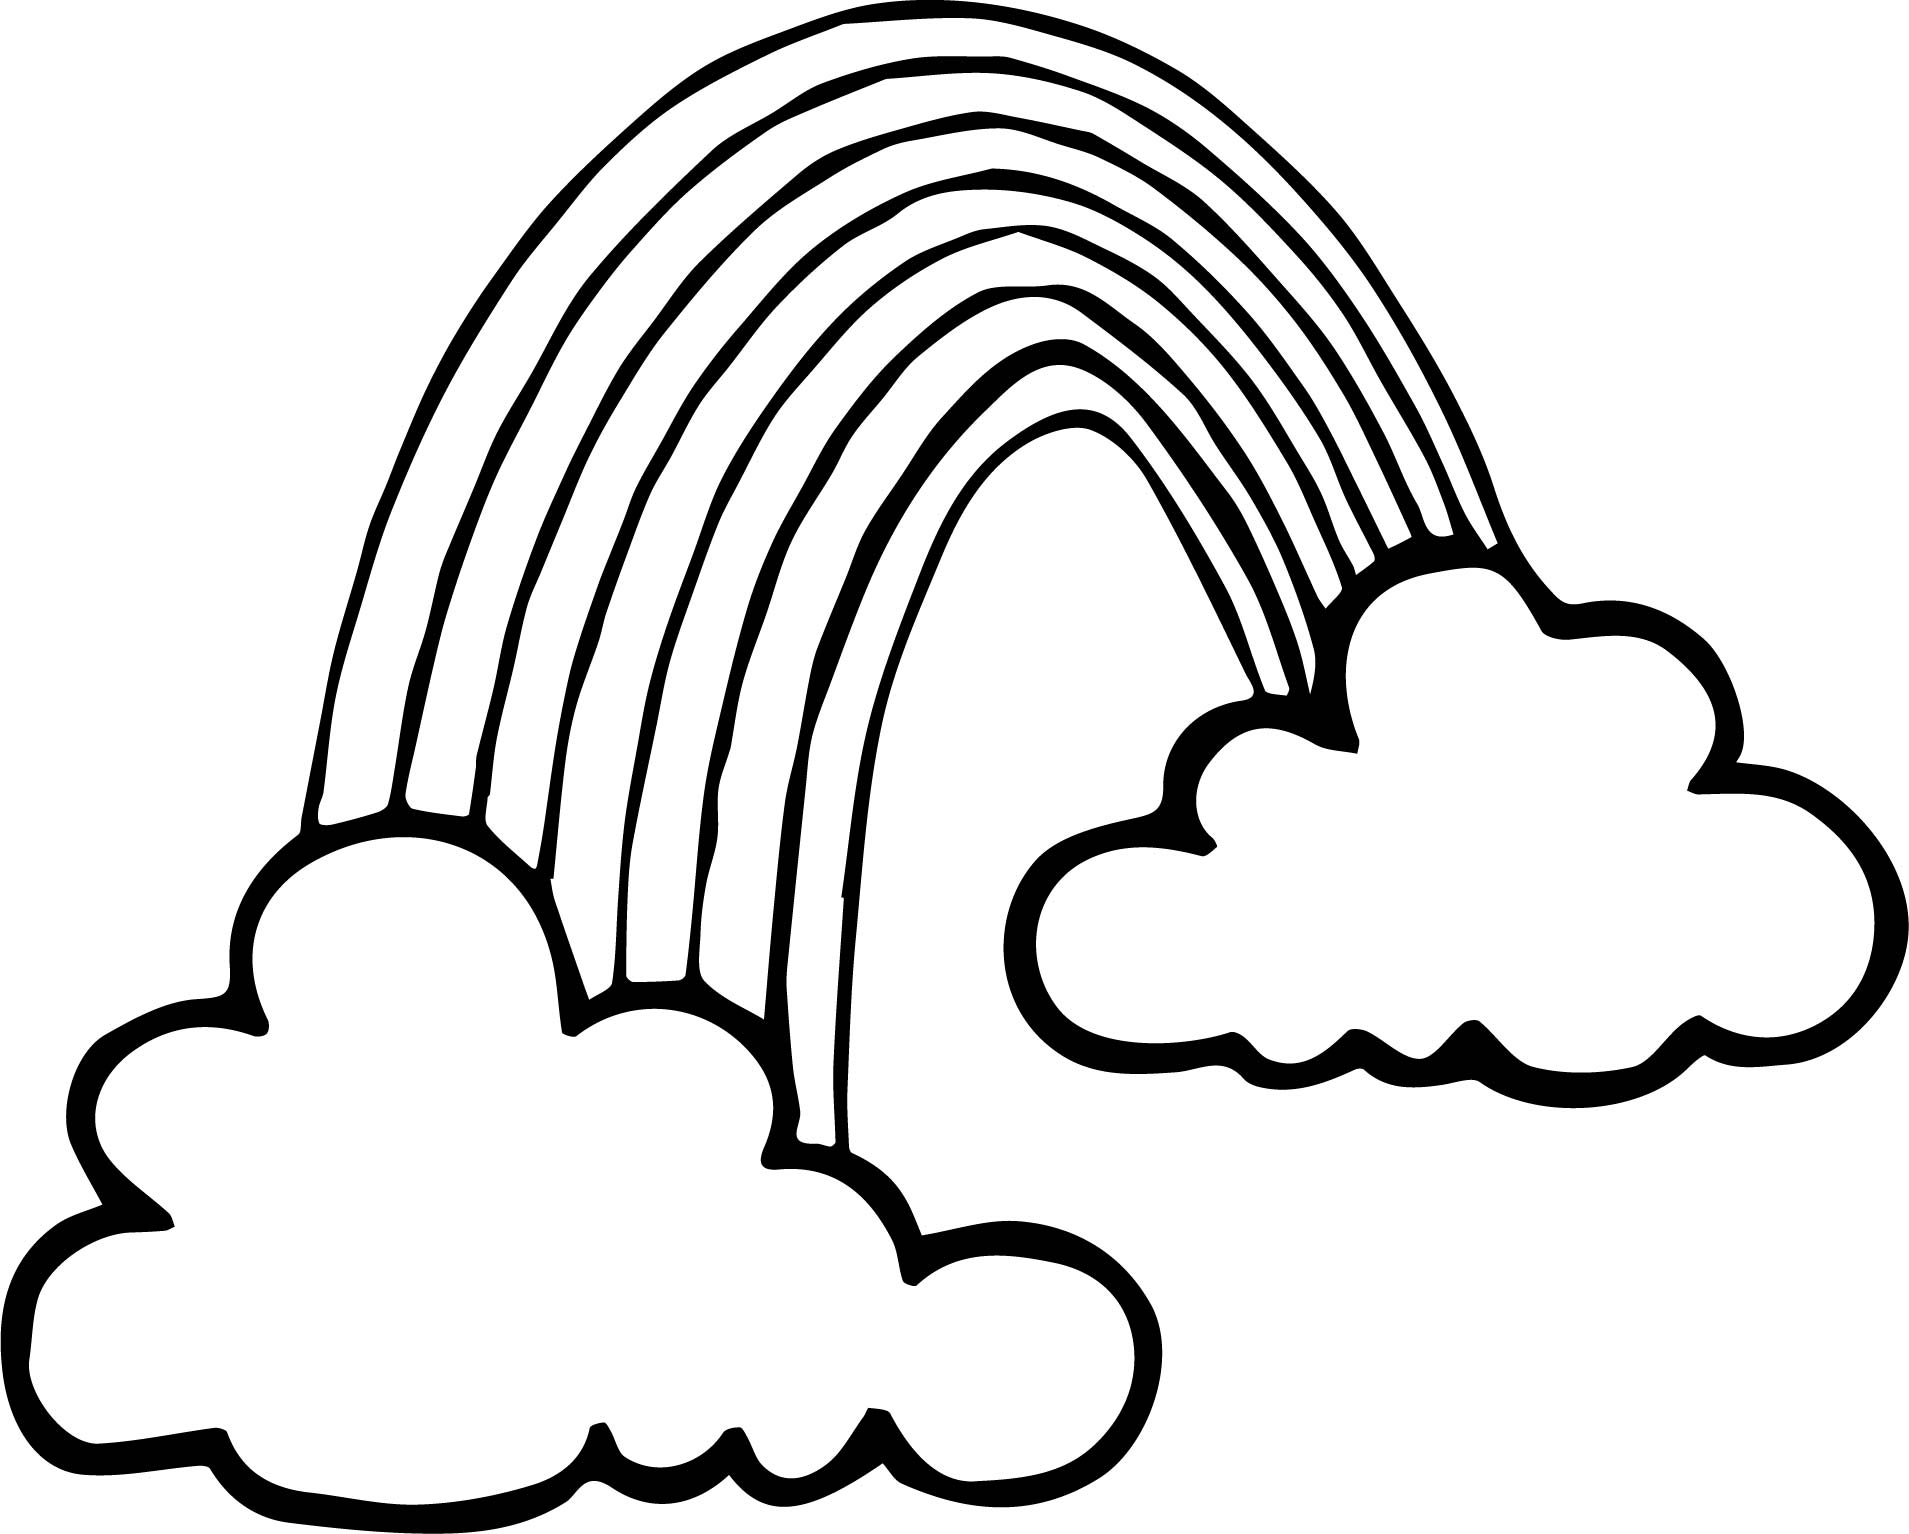 Any Free Rainbow Images Coloring Page